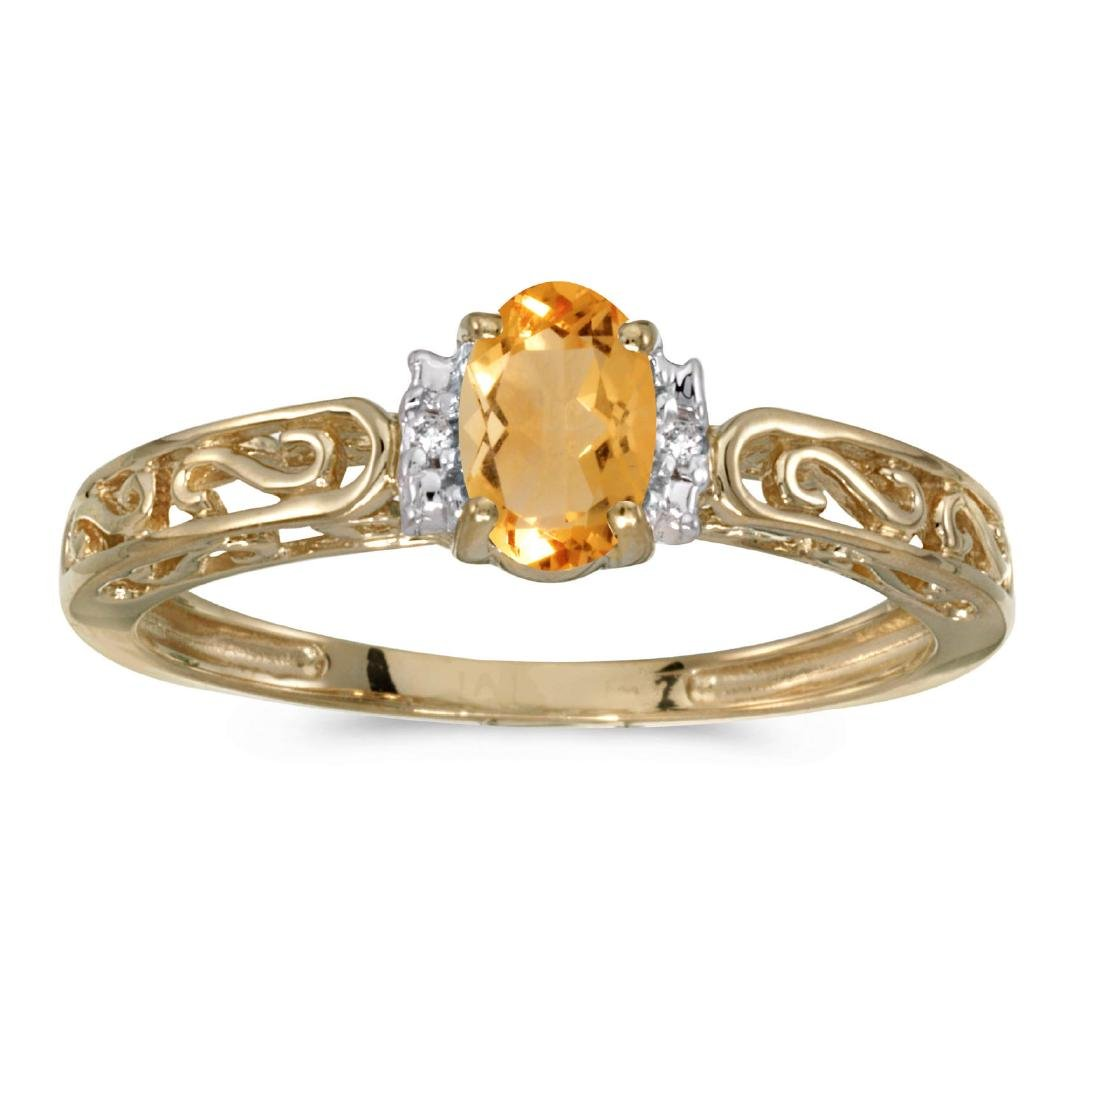 Certified 10k Yellow Gold Oval Citrine And Diamond Ring